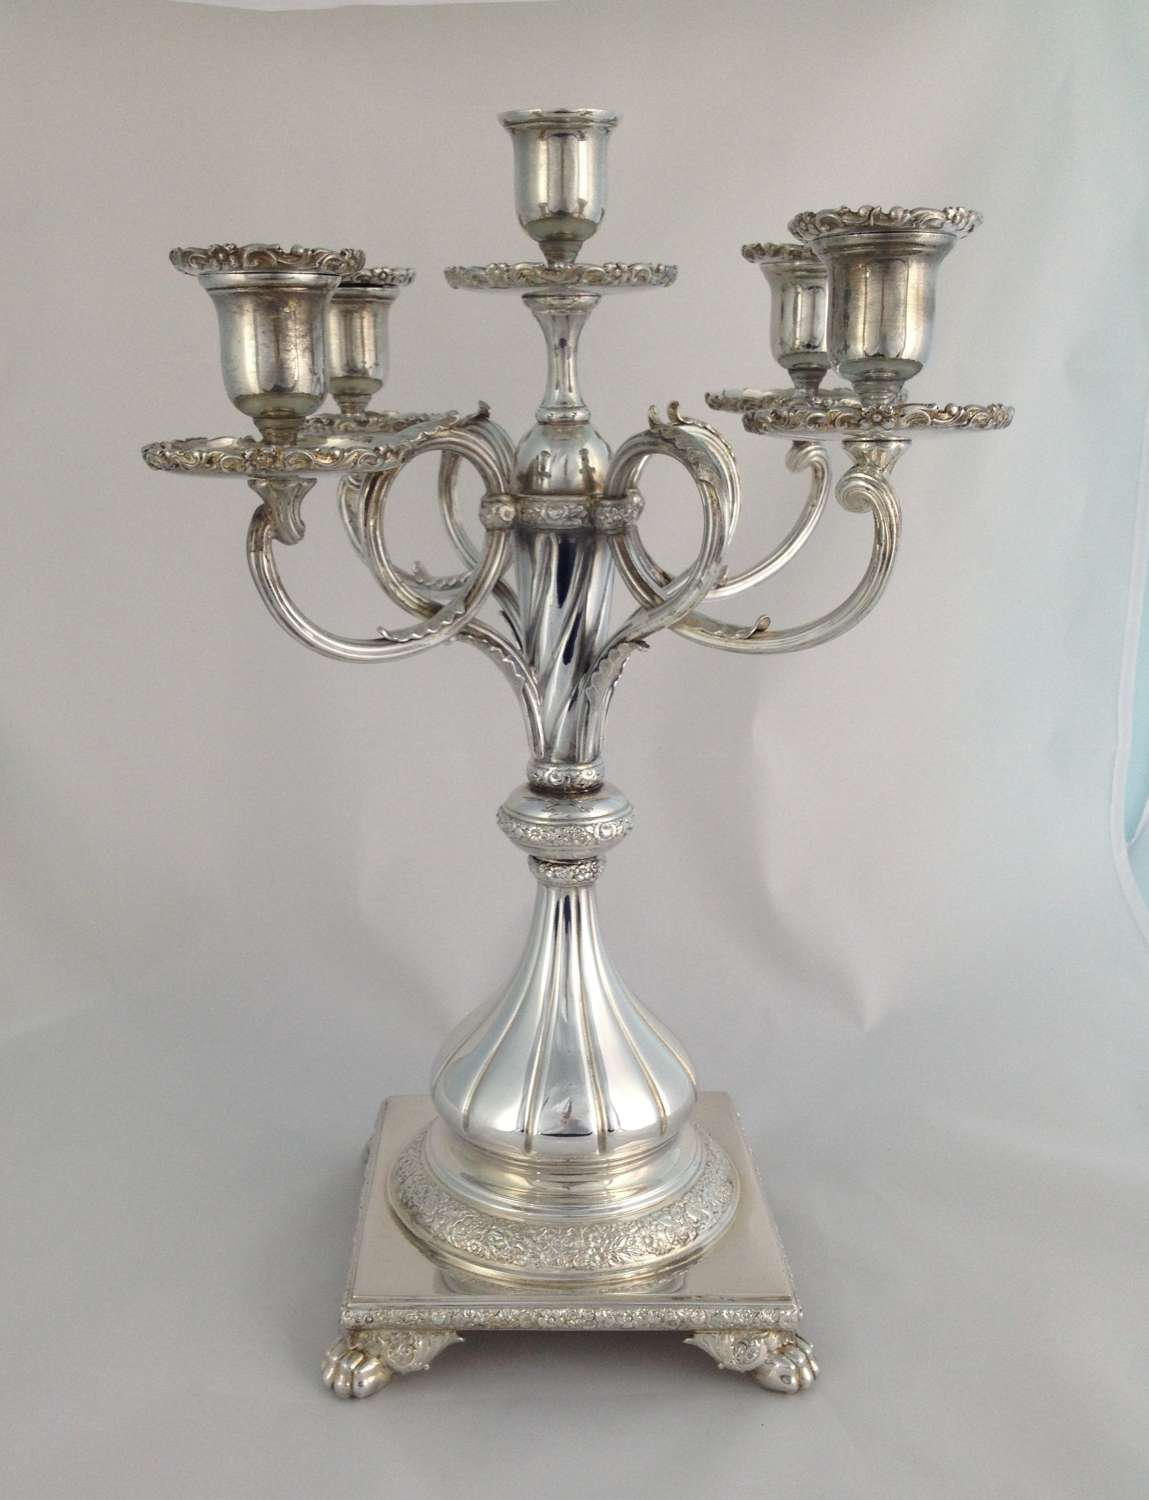 Tiffany & Co. Silver Plated 5 Sconce Candelabra Victorian C.1890 6141